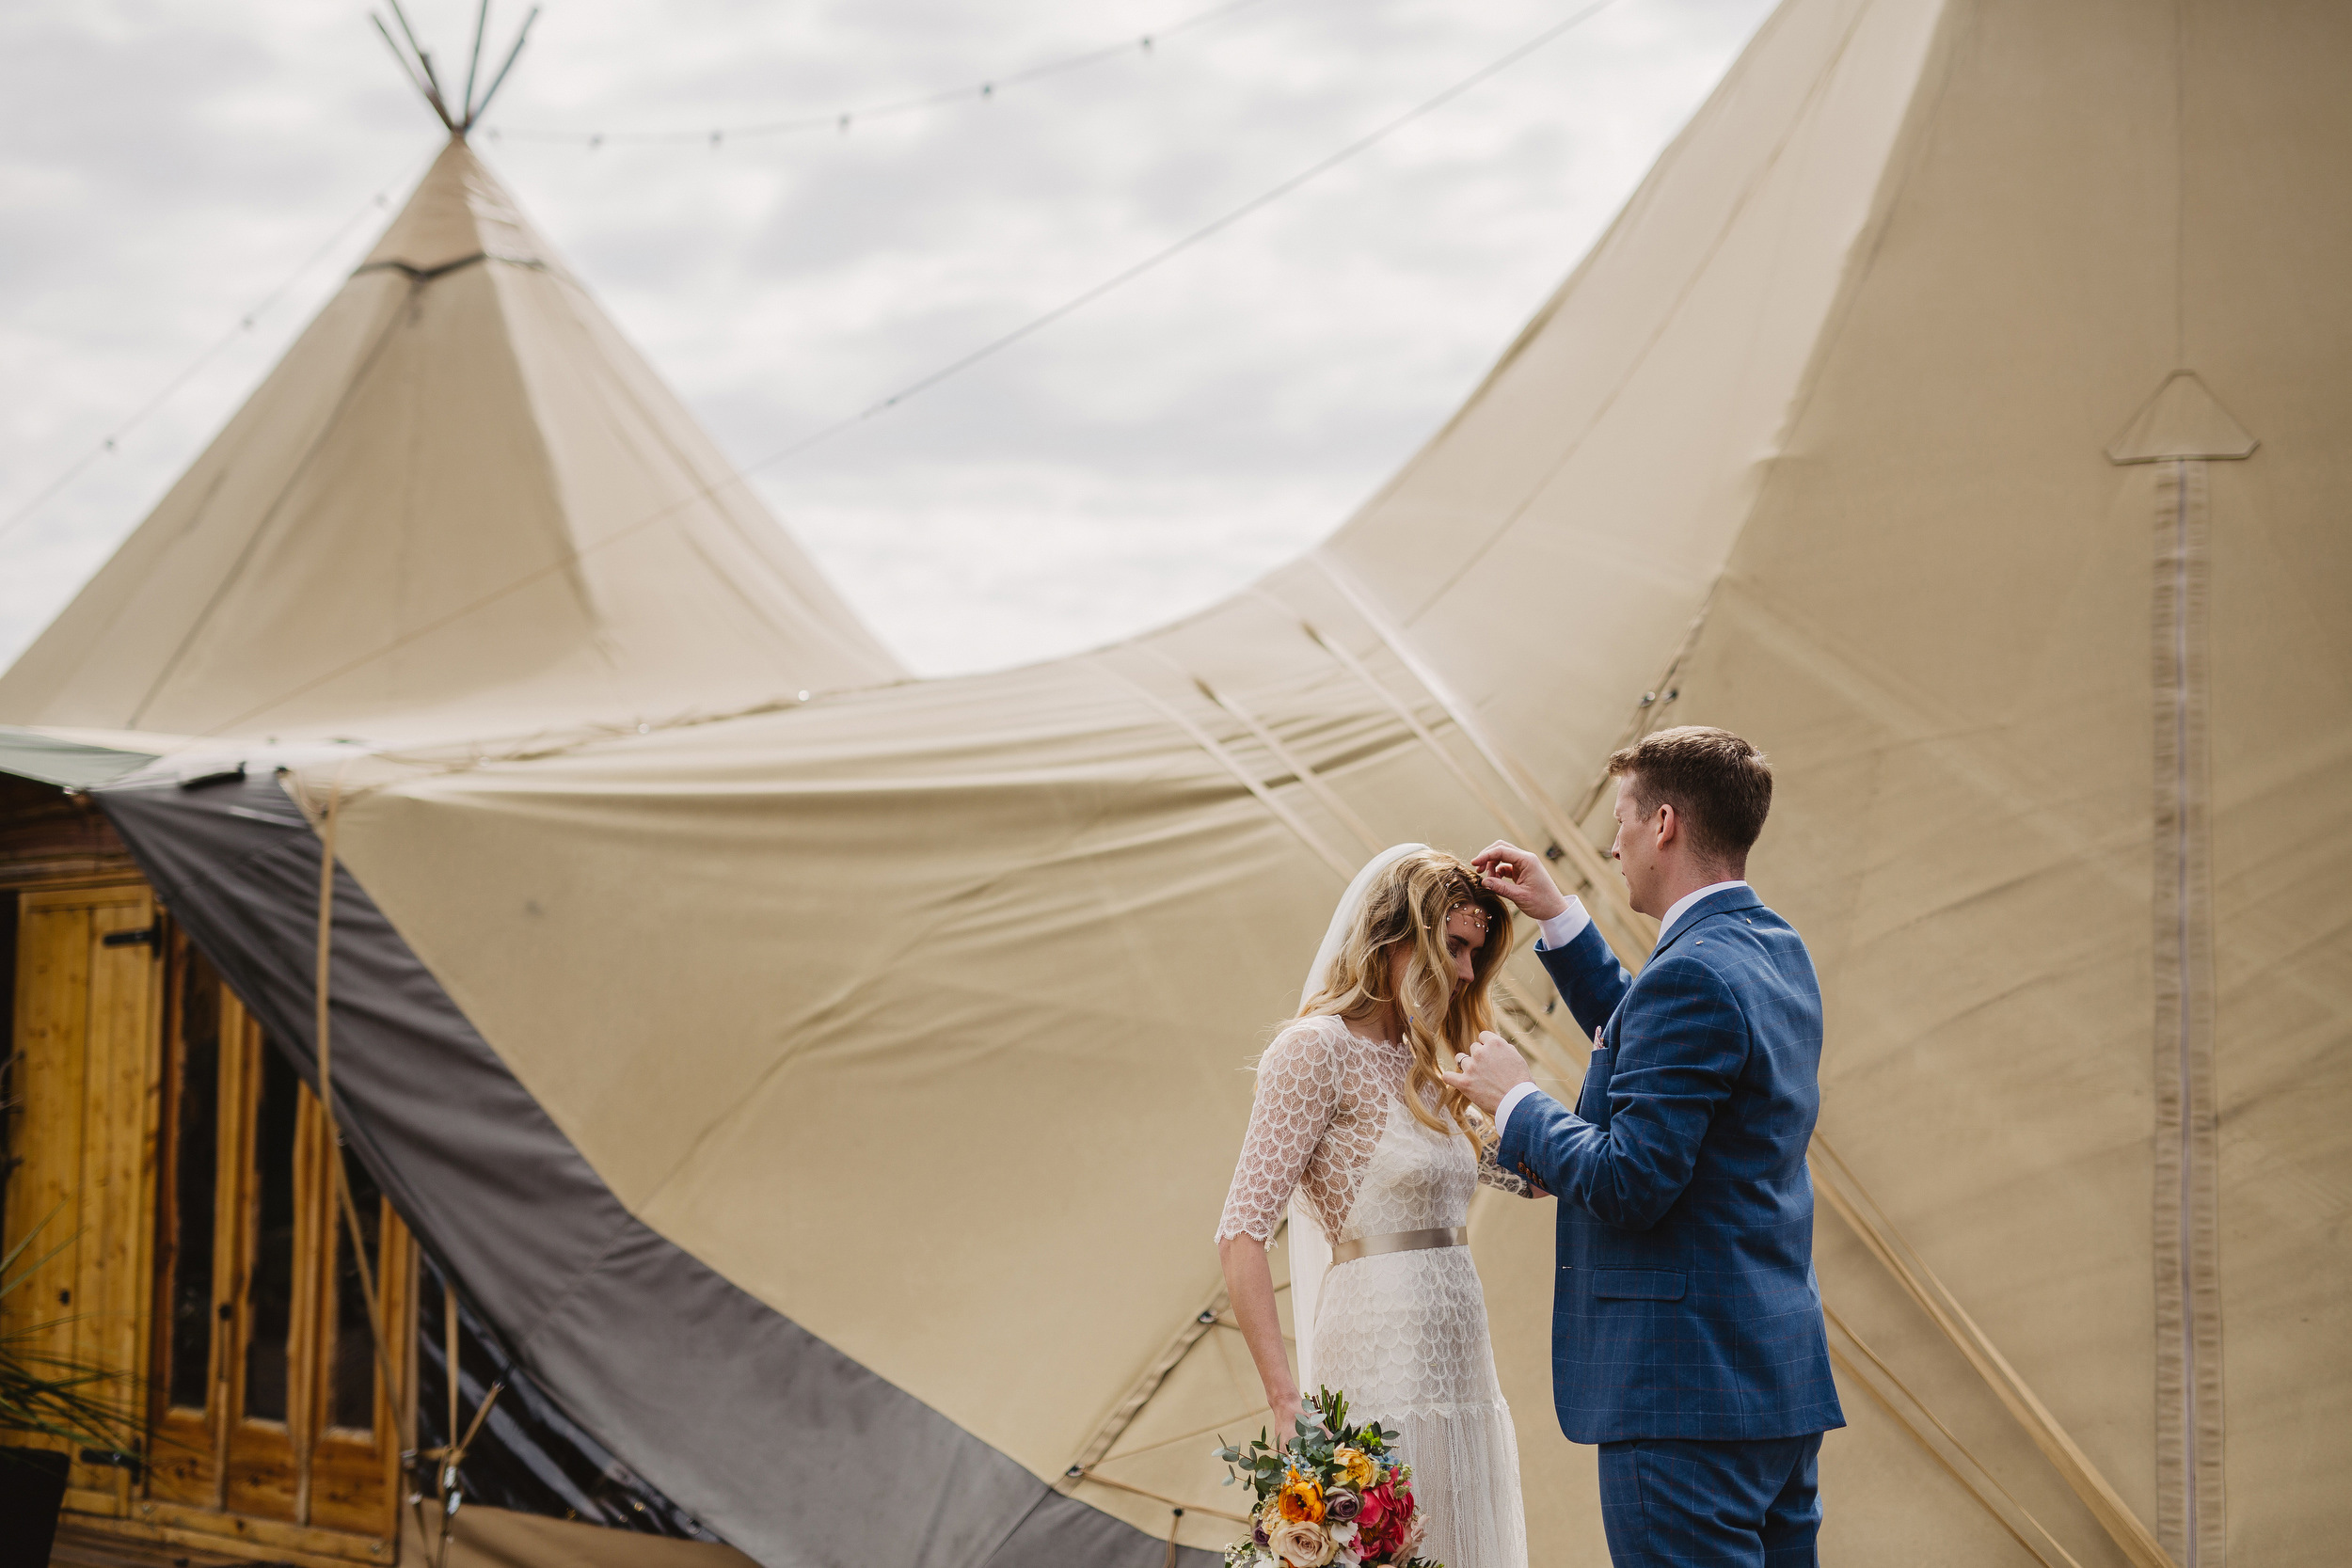 Gemma-Bohemian-Outdoor-Tipi-Wedding-Laid-Back-Relaxed-Family-Wedding-Kate-Beaumont-Astilbe-by-S6-Photography-Sheffield-22.jpg